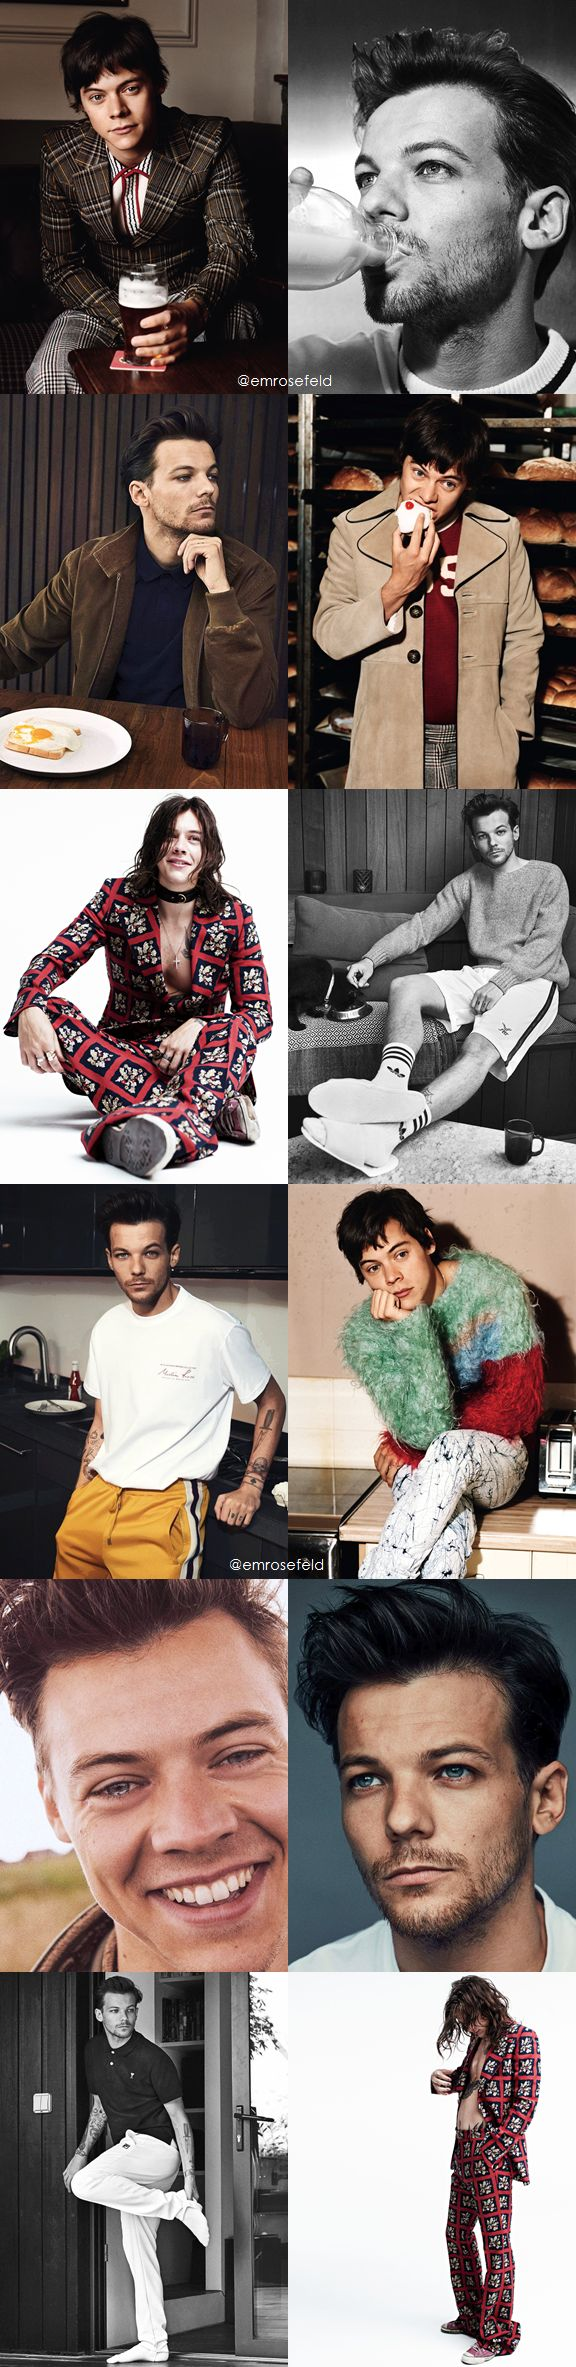 Harry Styles & Louis Tomlinson | first solo photoshoot | emrosefeld |